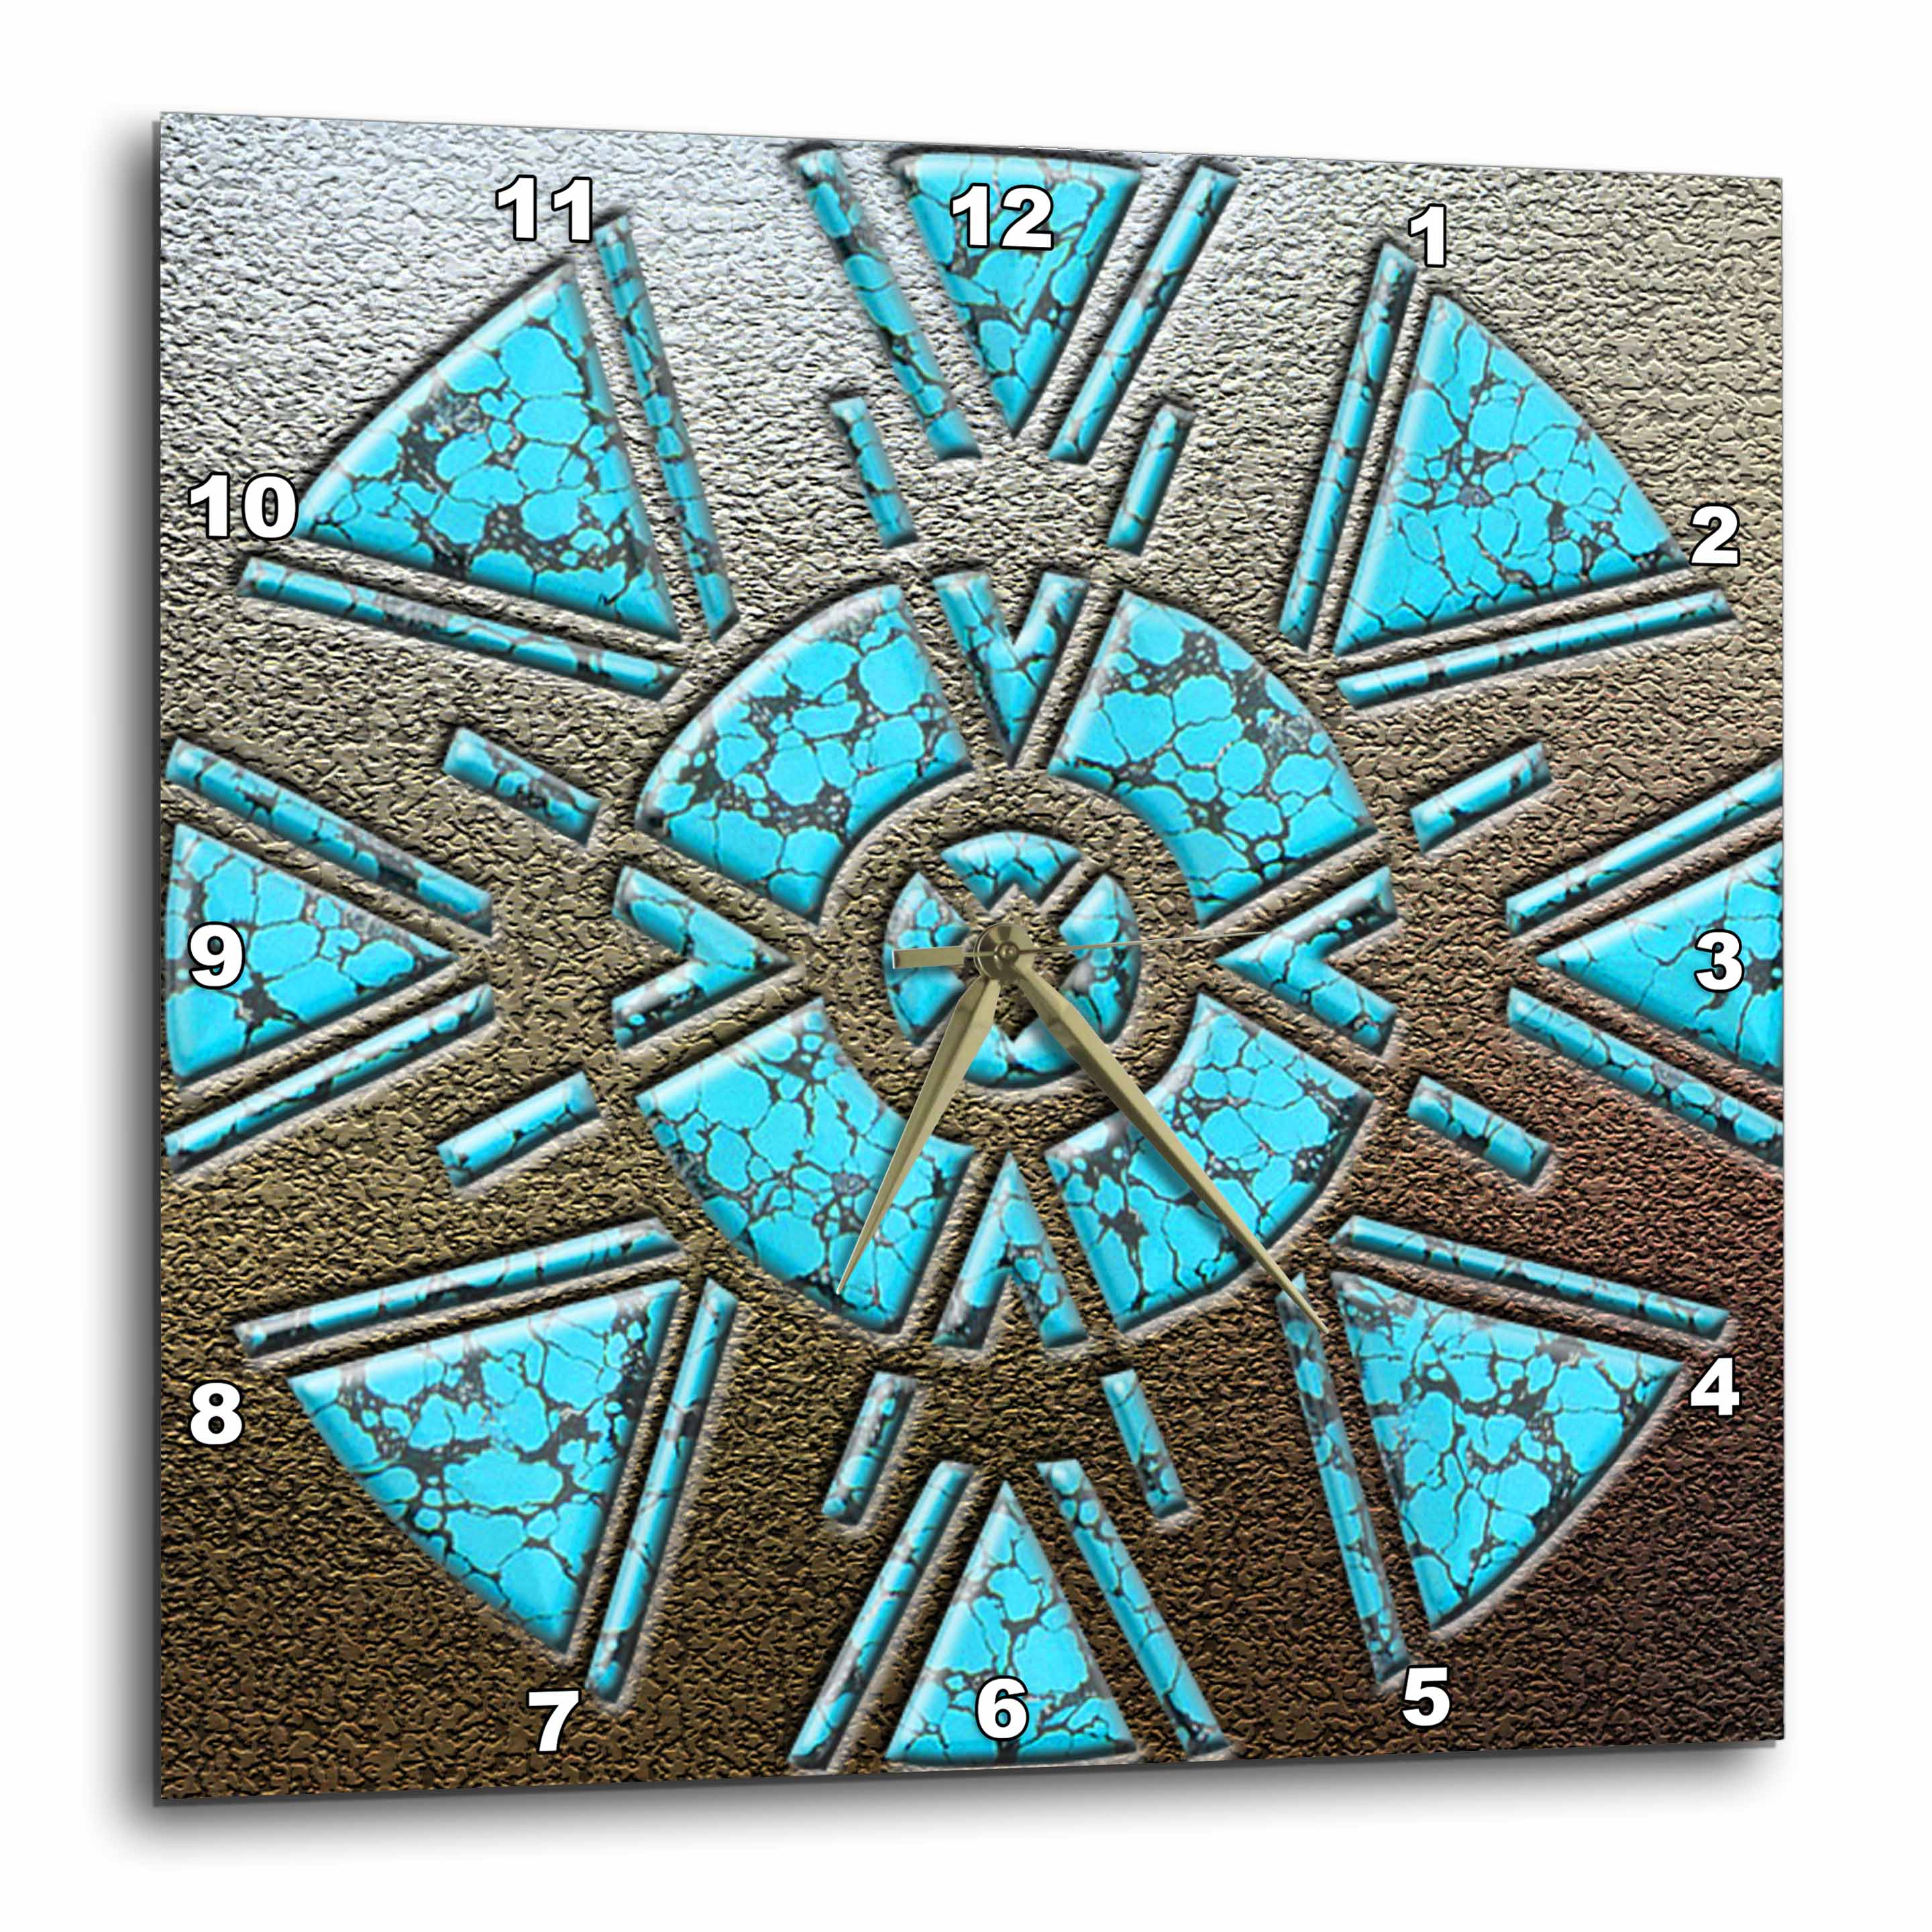 3dRose Designer One of A Kind Native American Art, Wall Clock, 15 by 15-inch